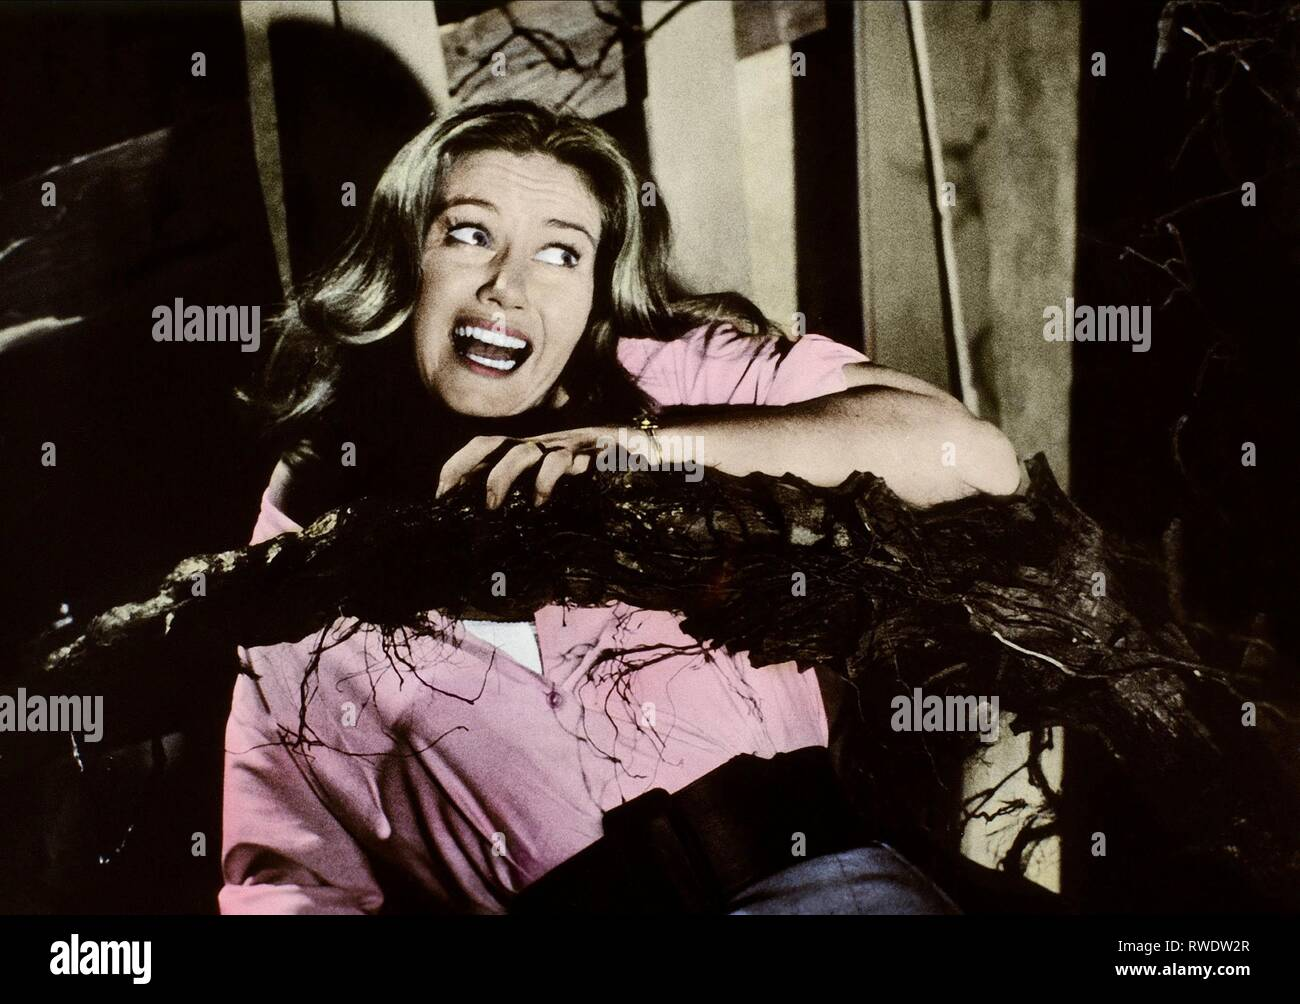 JANETTE SCOTT, THE DAY OF THE TRIFFIDS, 1963 Stock Photo